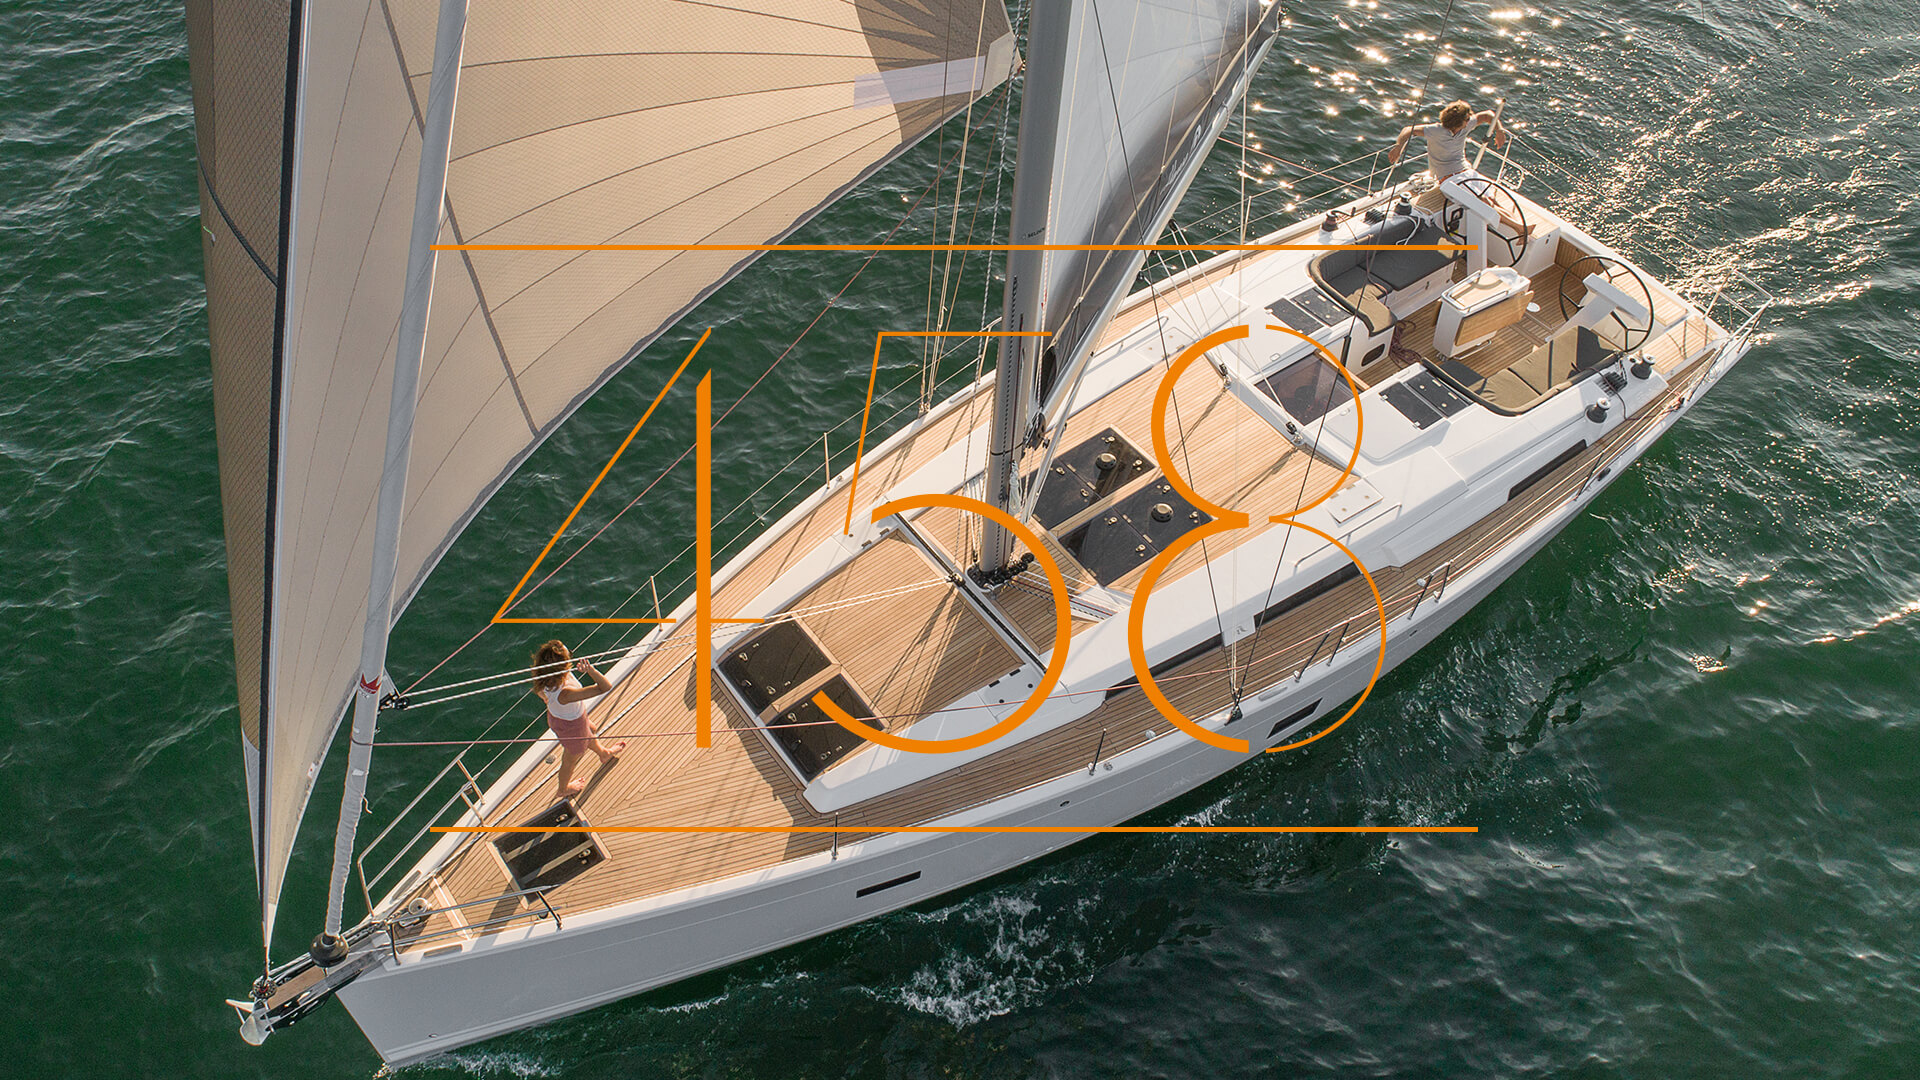 Hanse 458 explained in detail